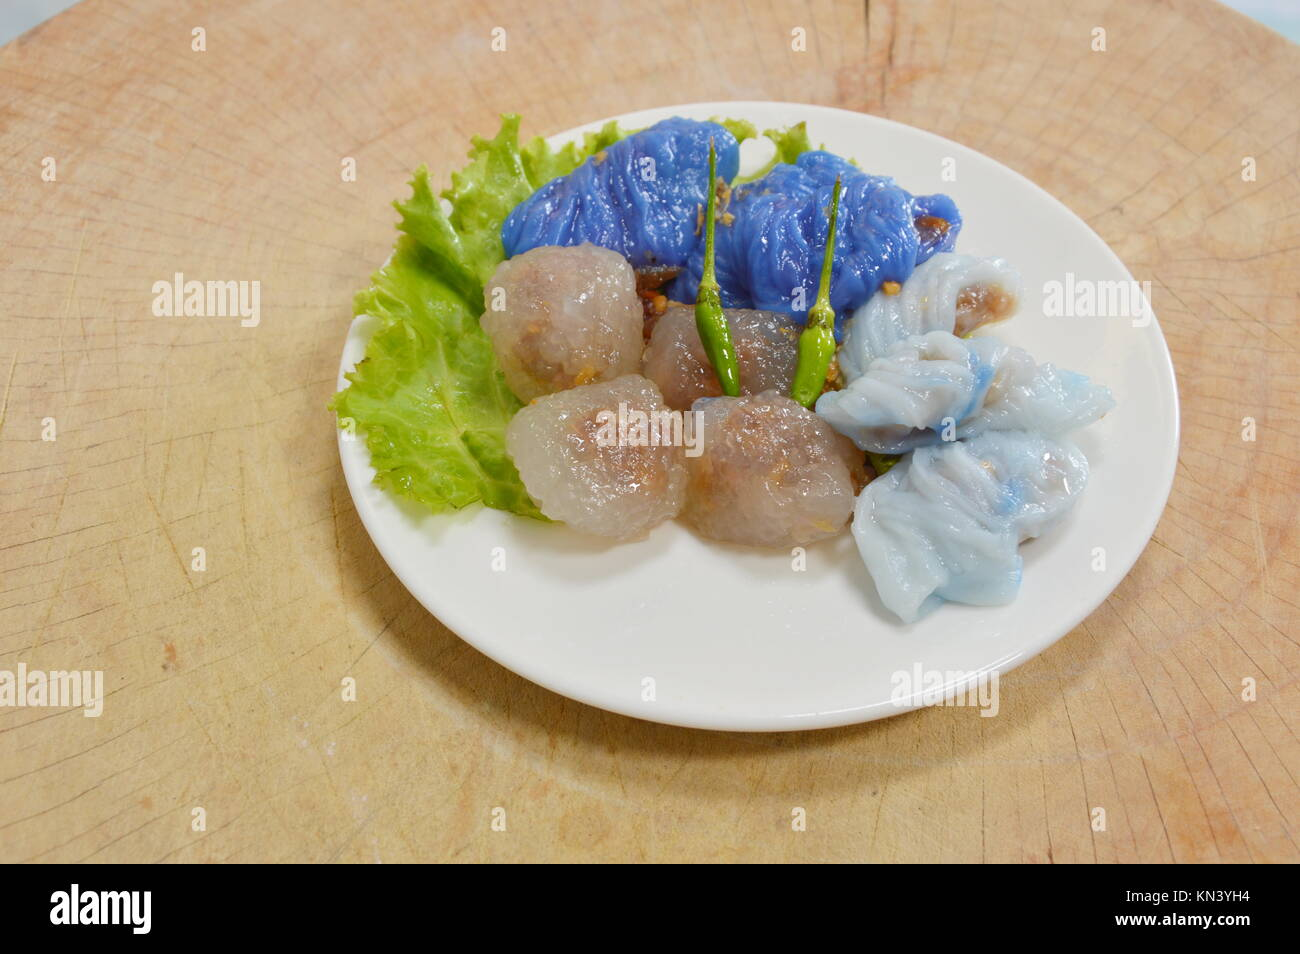 steamed rice skin dumplings and tapioca balls with pork filling - Stock Image